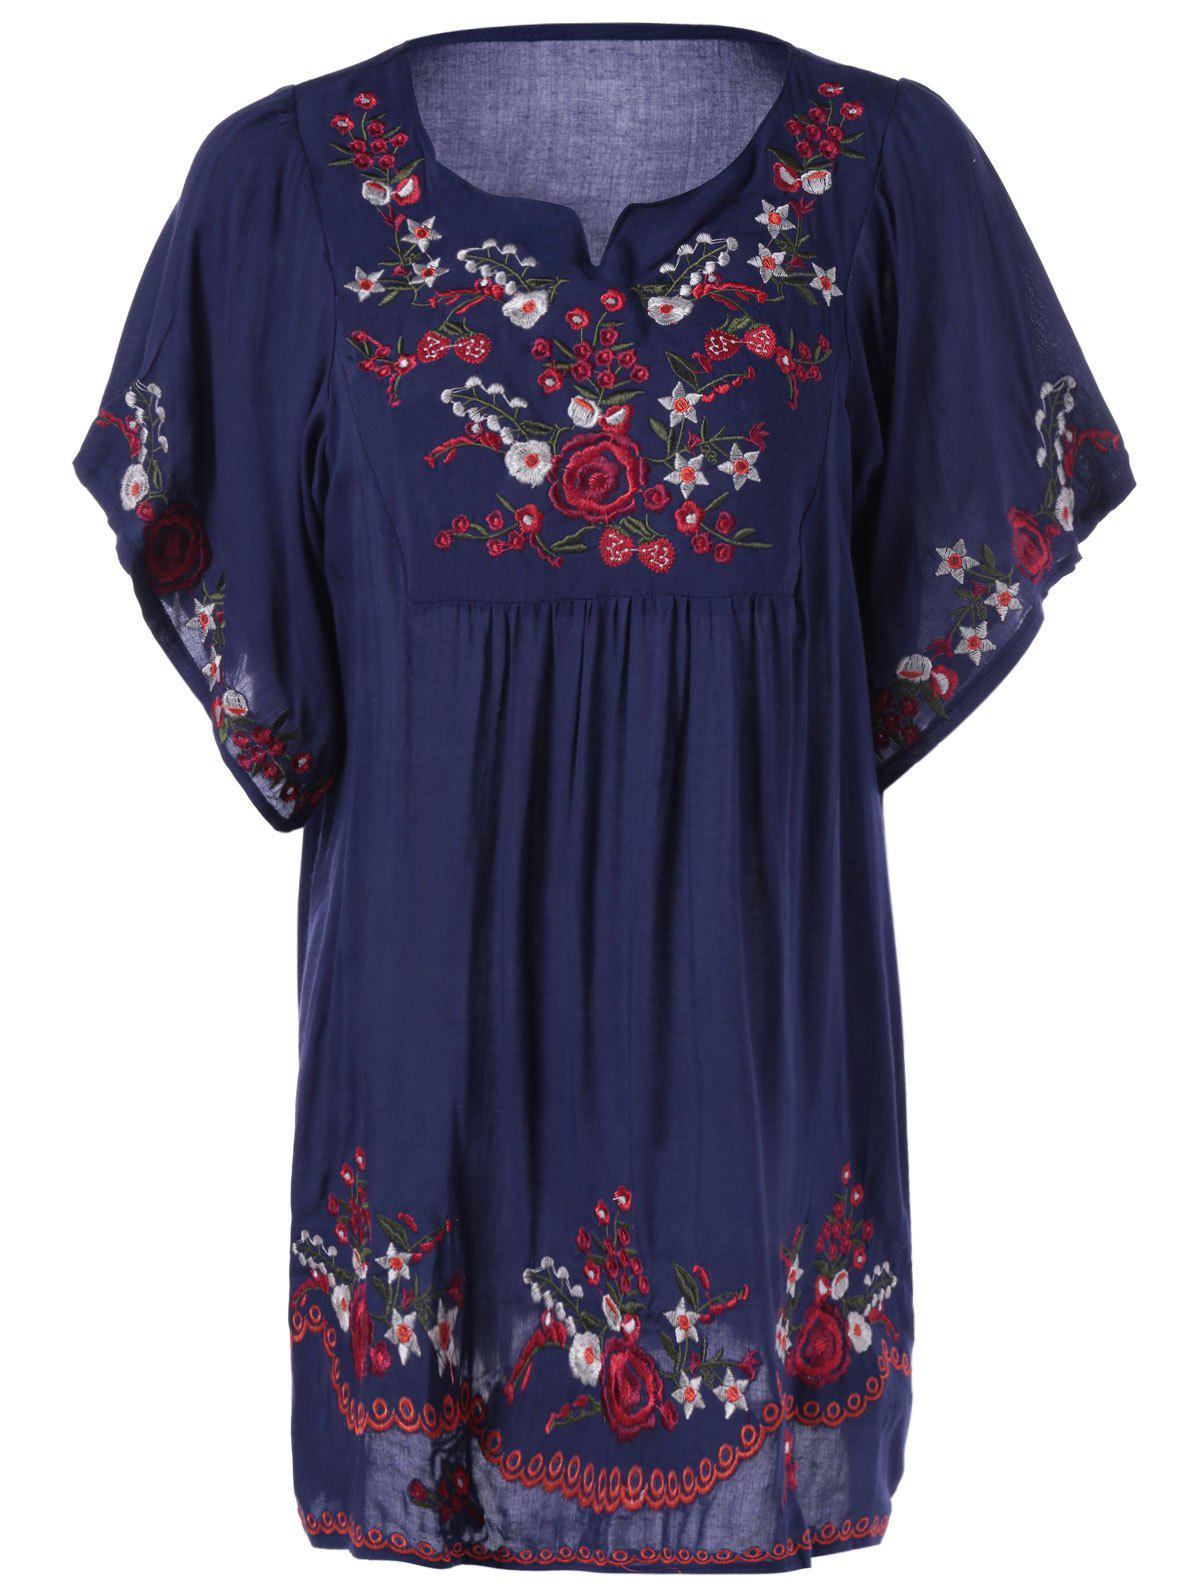 Loose-Fitting Embroidered Short Sleeves Blouse - DEEP BLUE ONE SIZE(FIT SIZE XS TO M)